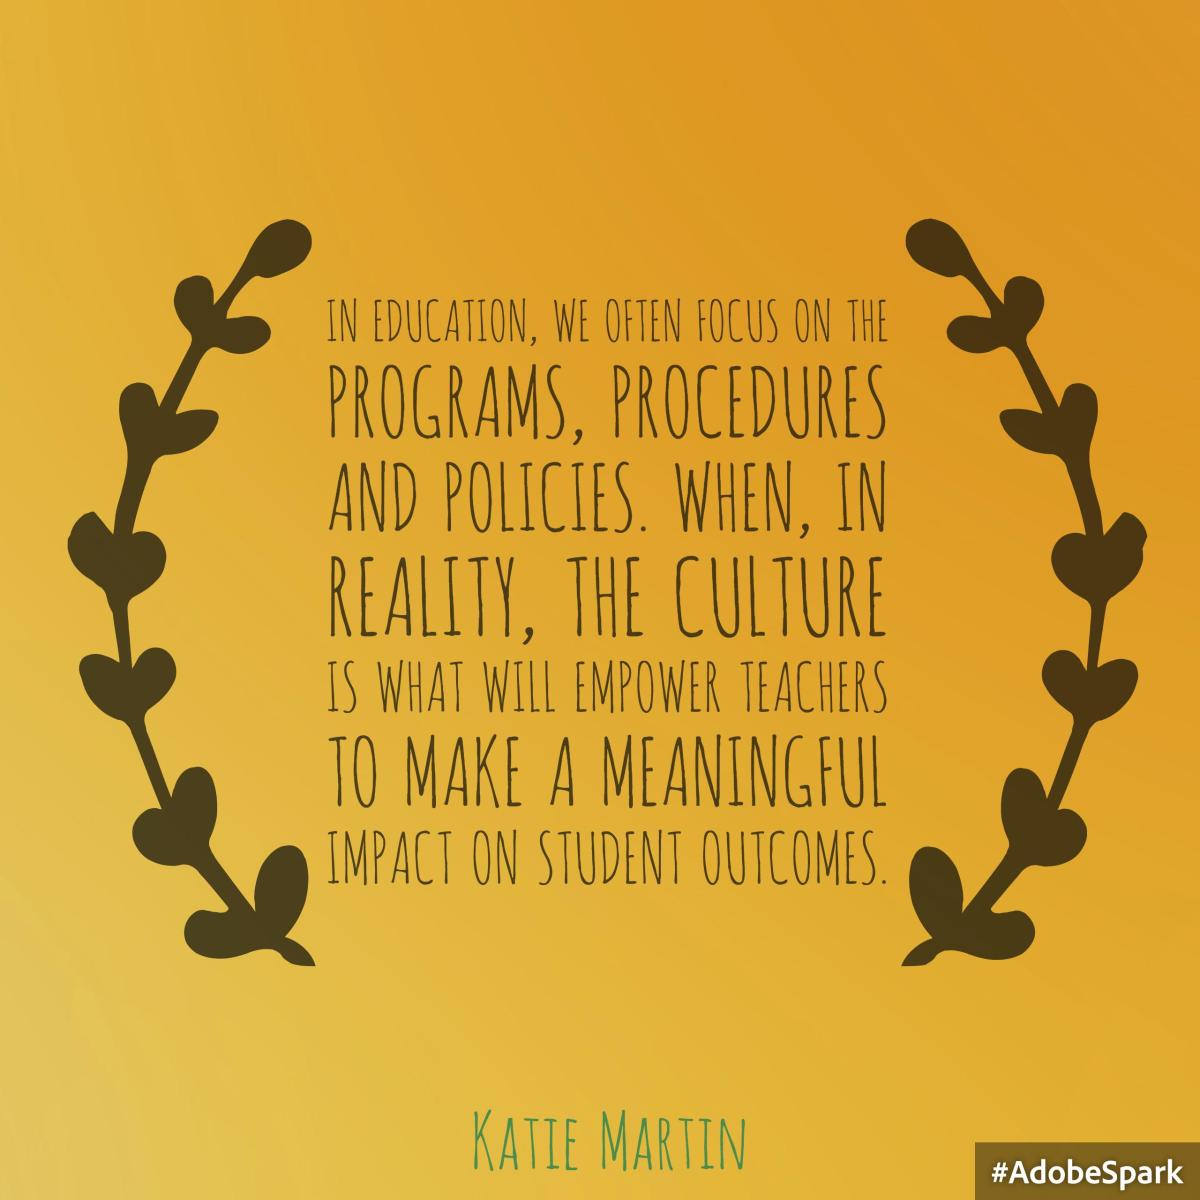 Culture is Everything in Schools